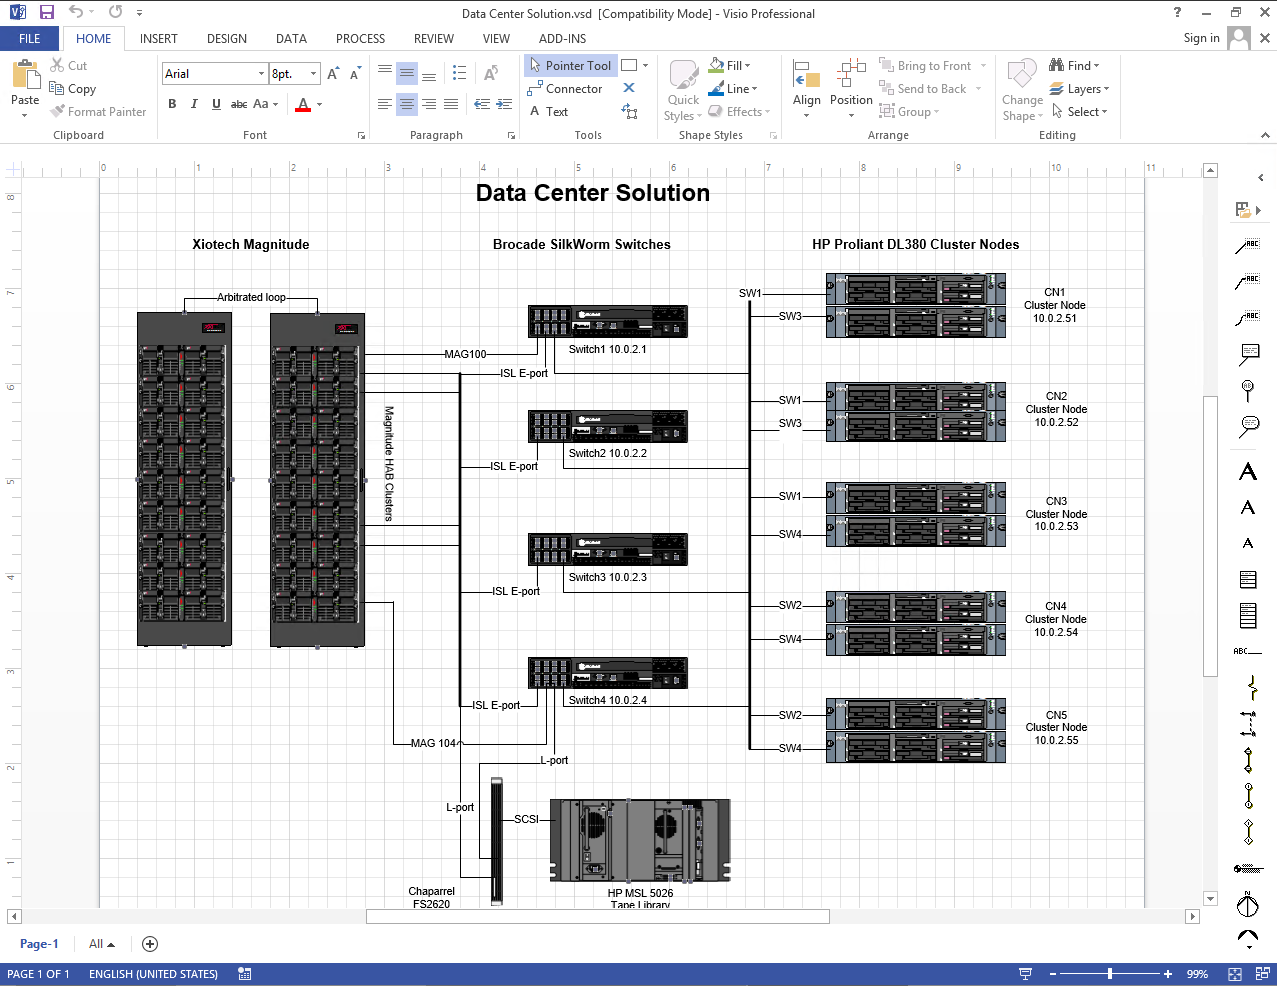 24 Good Sample Of Visio Stencils For Network Diagrams